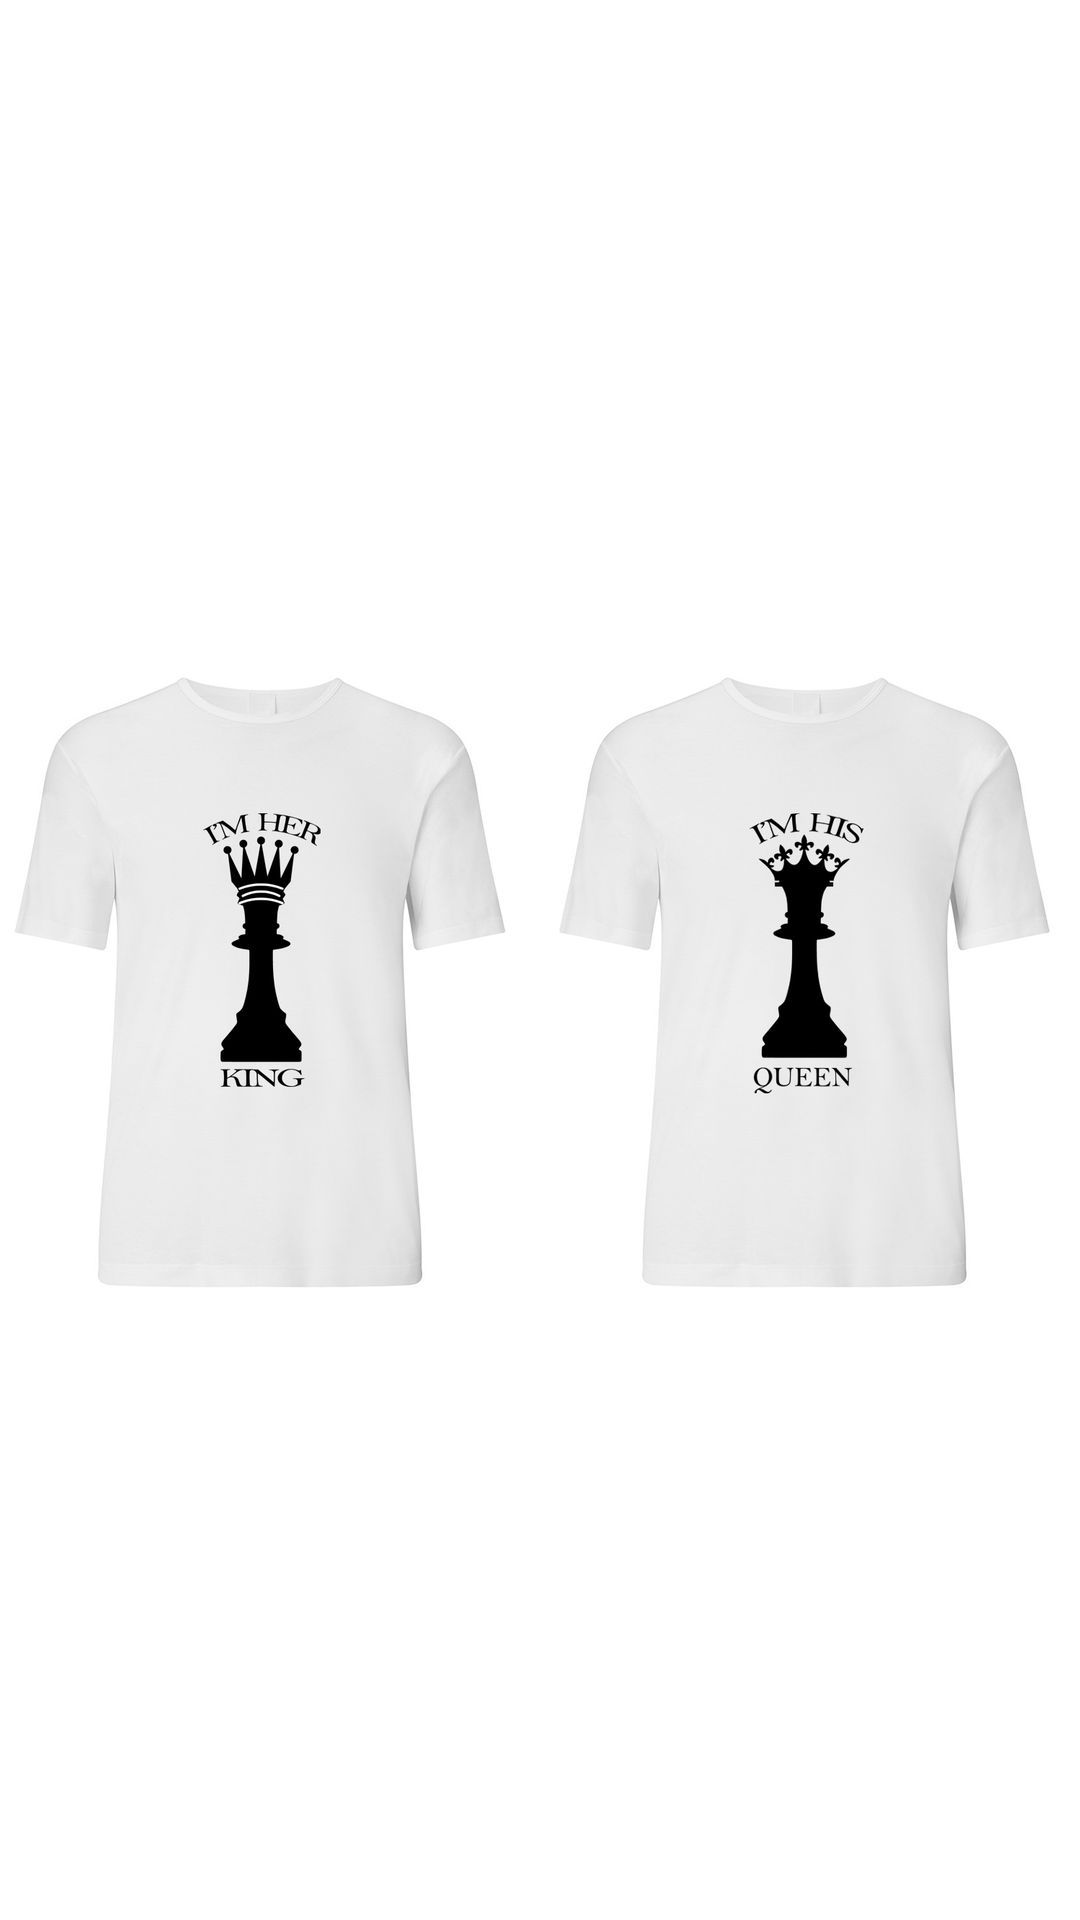 b5b966f38e RITZEES White Dry Fit Polyester Couple Combo T-Shirt On I m Her king, I m  His Queen - Buy RITZEES White Dry Fit Polyester Couple Combo T-Shirt On I m  Her ...